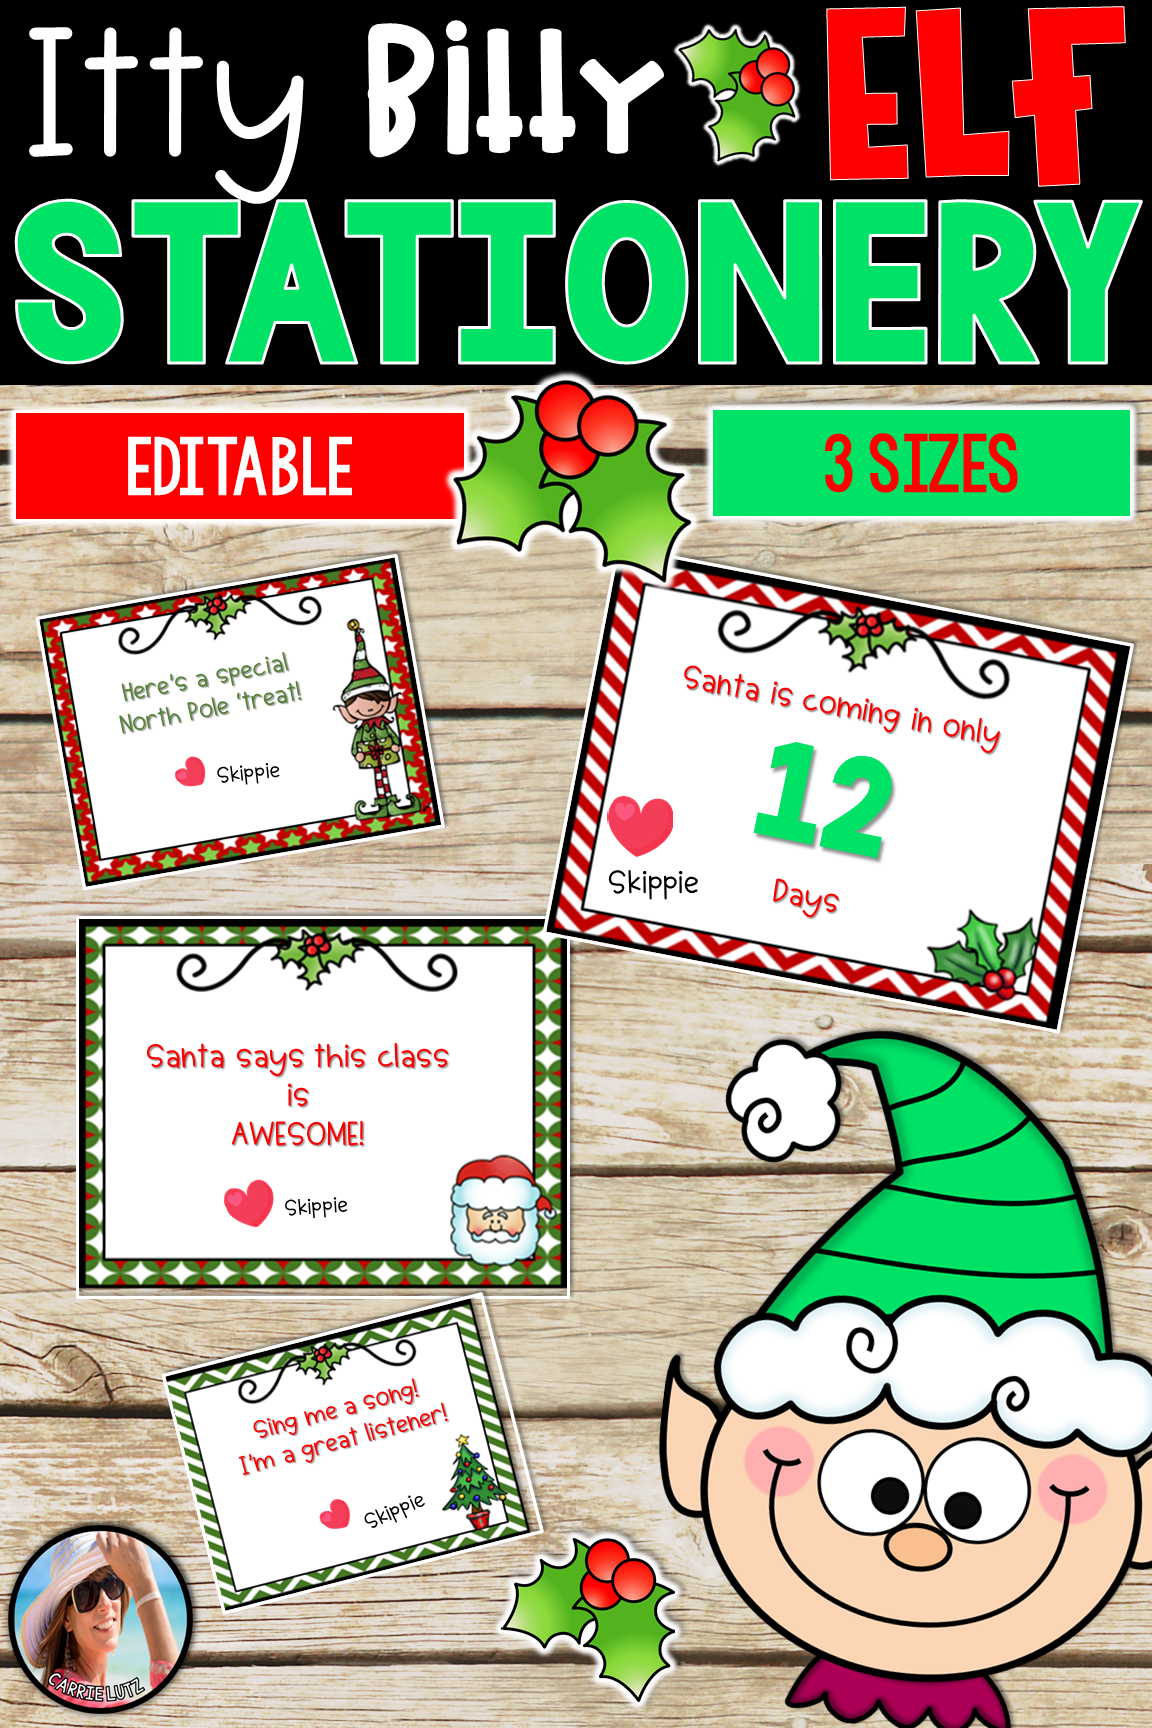 Elf Stationery For Notes From Your North Pole Visitor